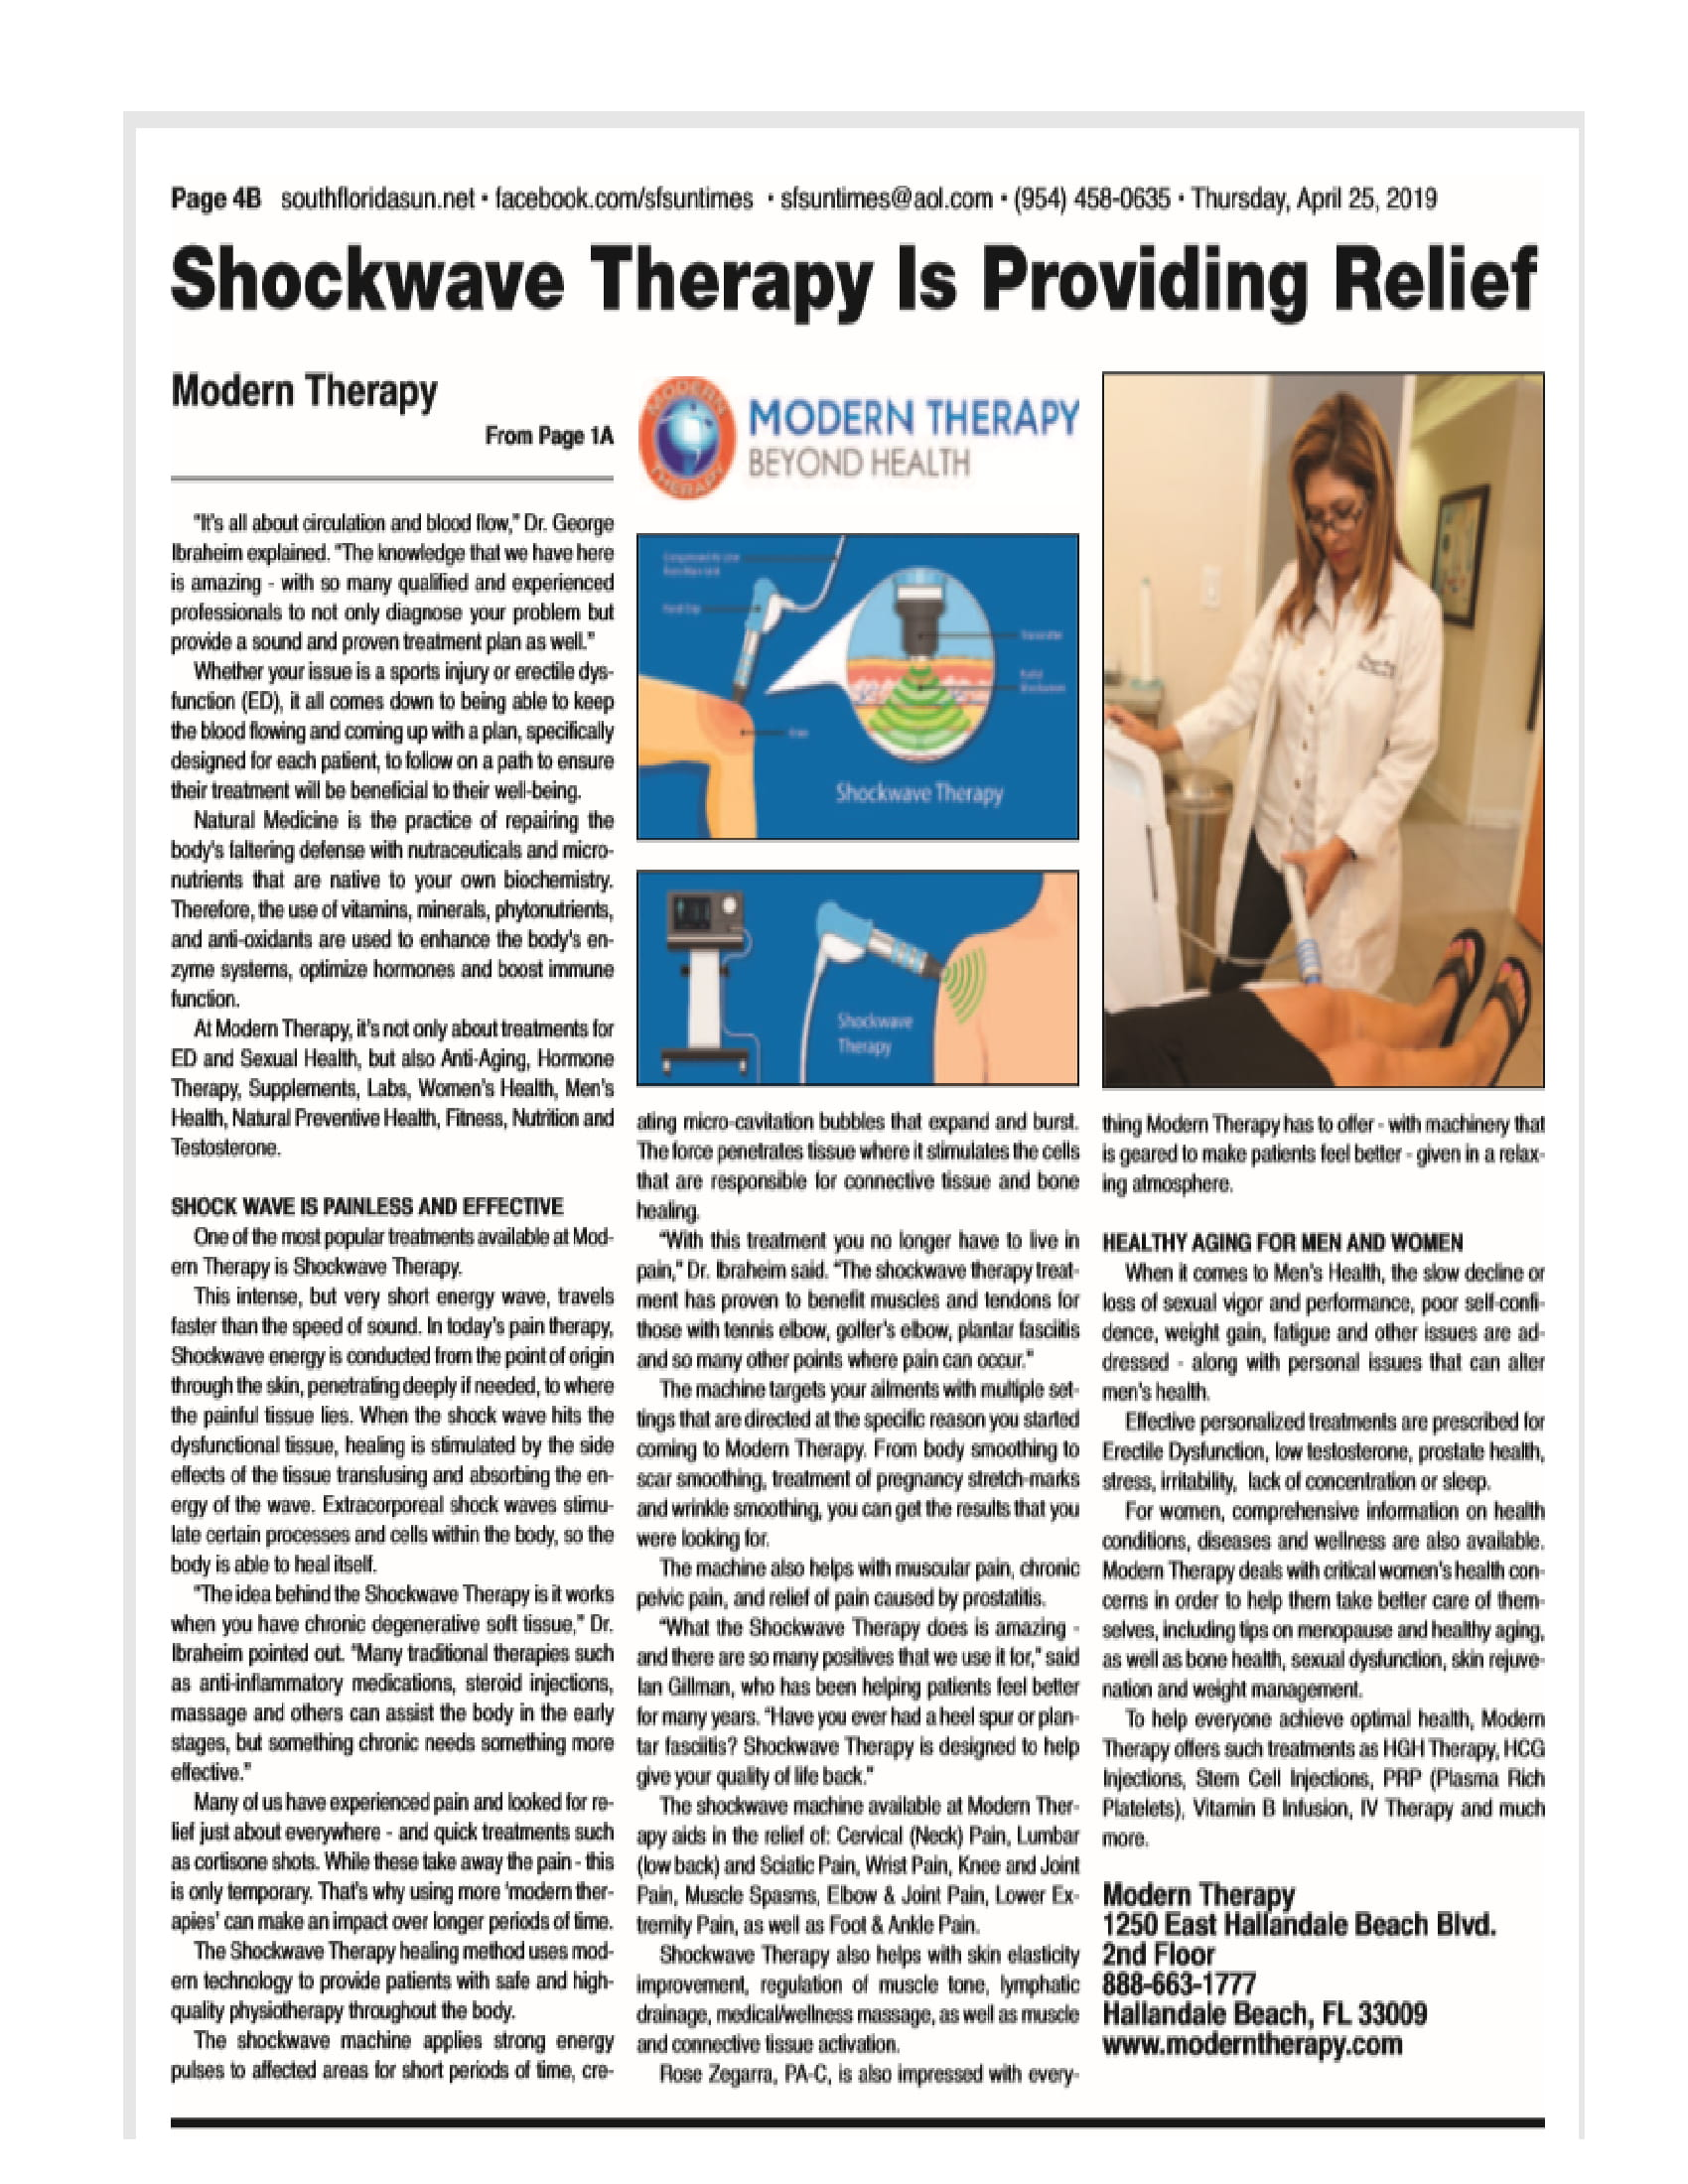 ModernTherapy-ShockwaveTherapy-Article-FL-Sun-Times